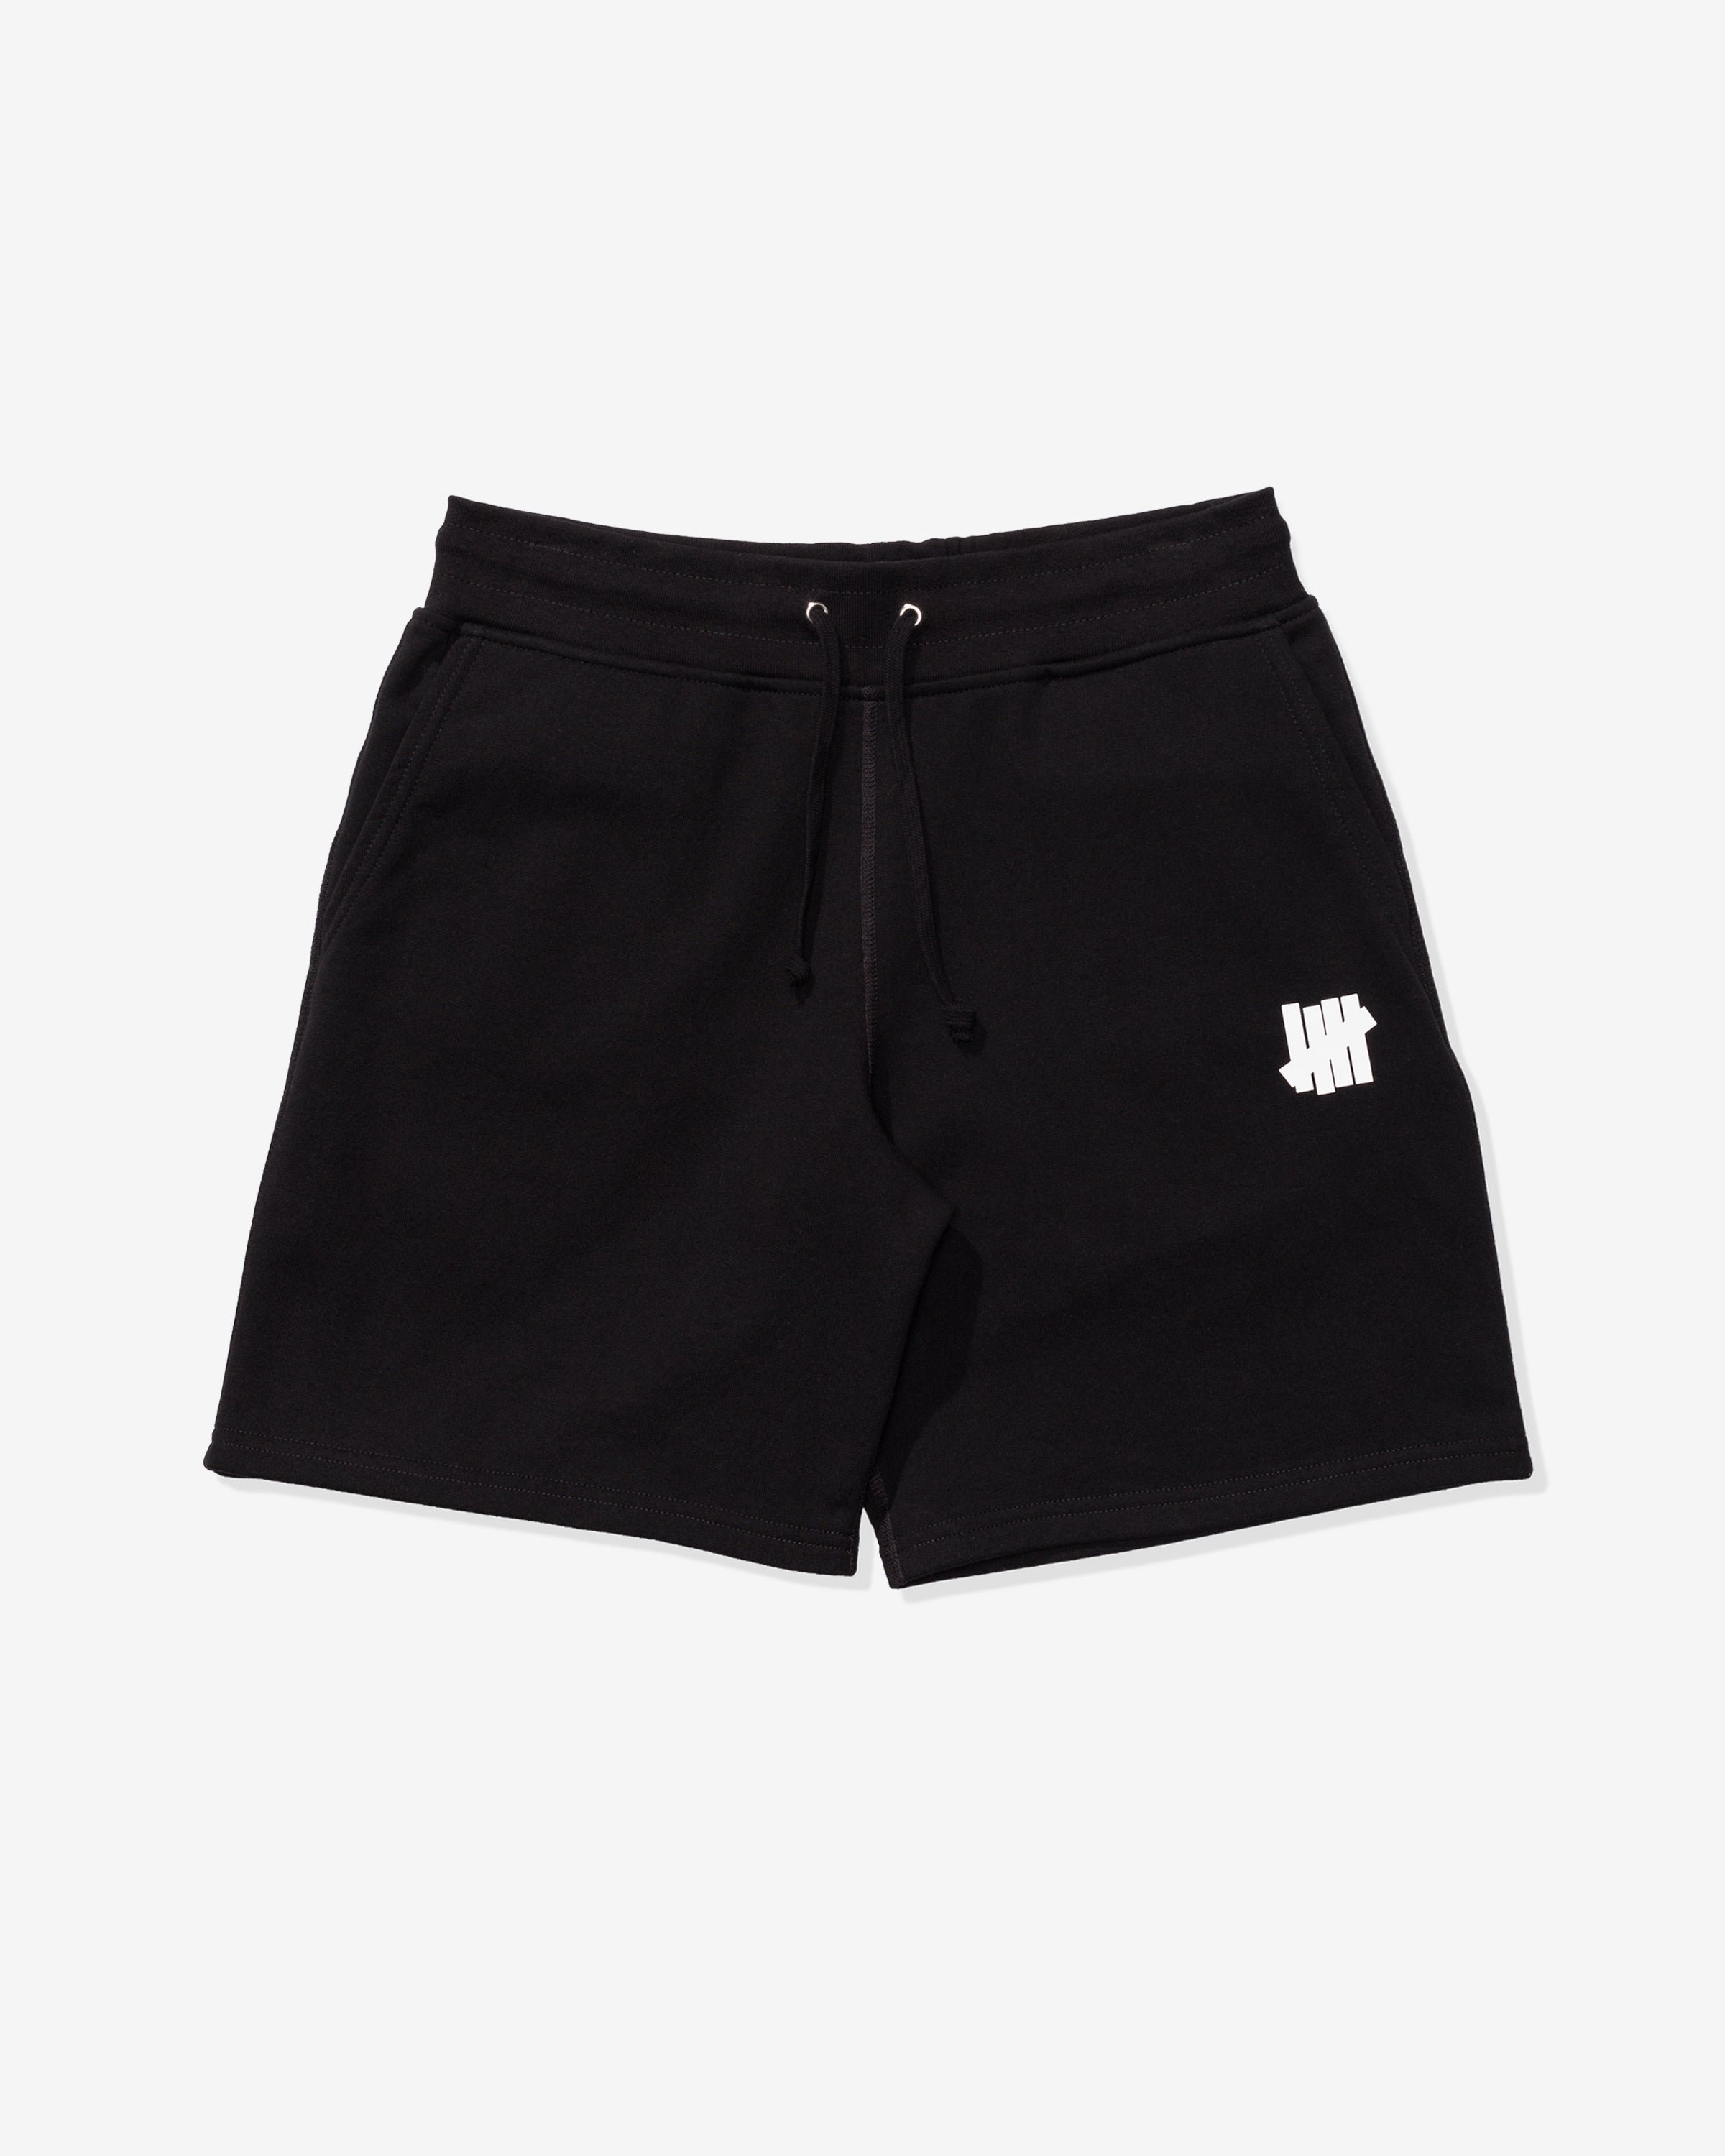 UACTP CORE SHORT - BLACK